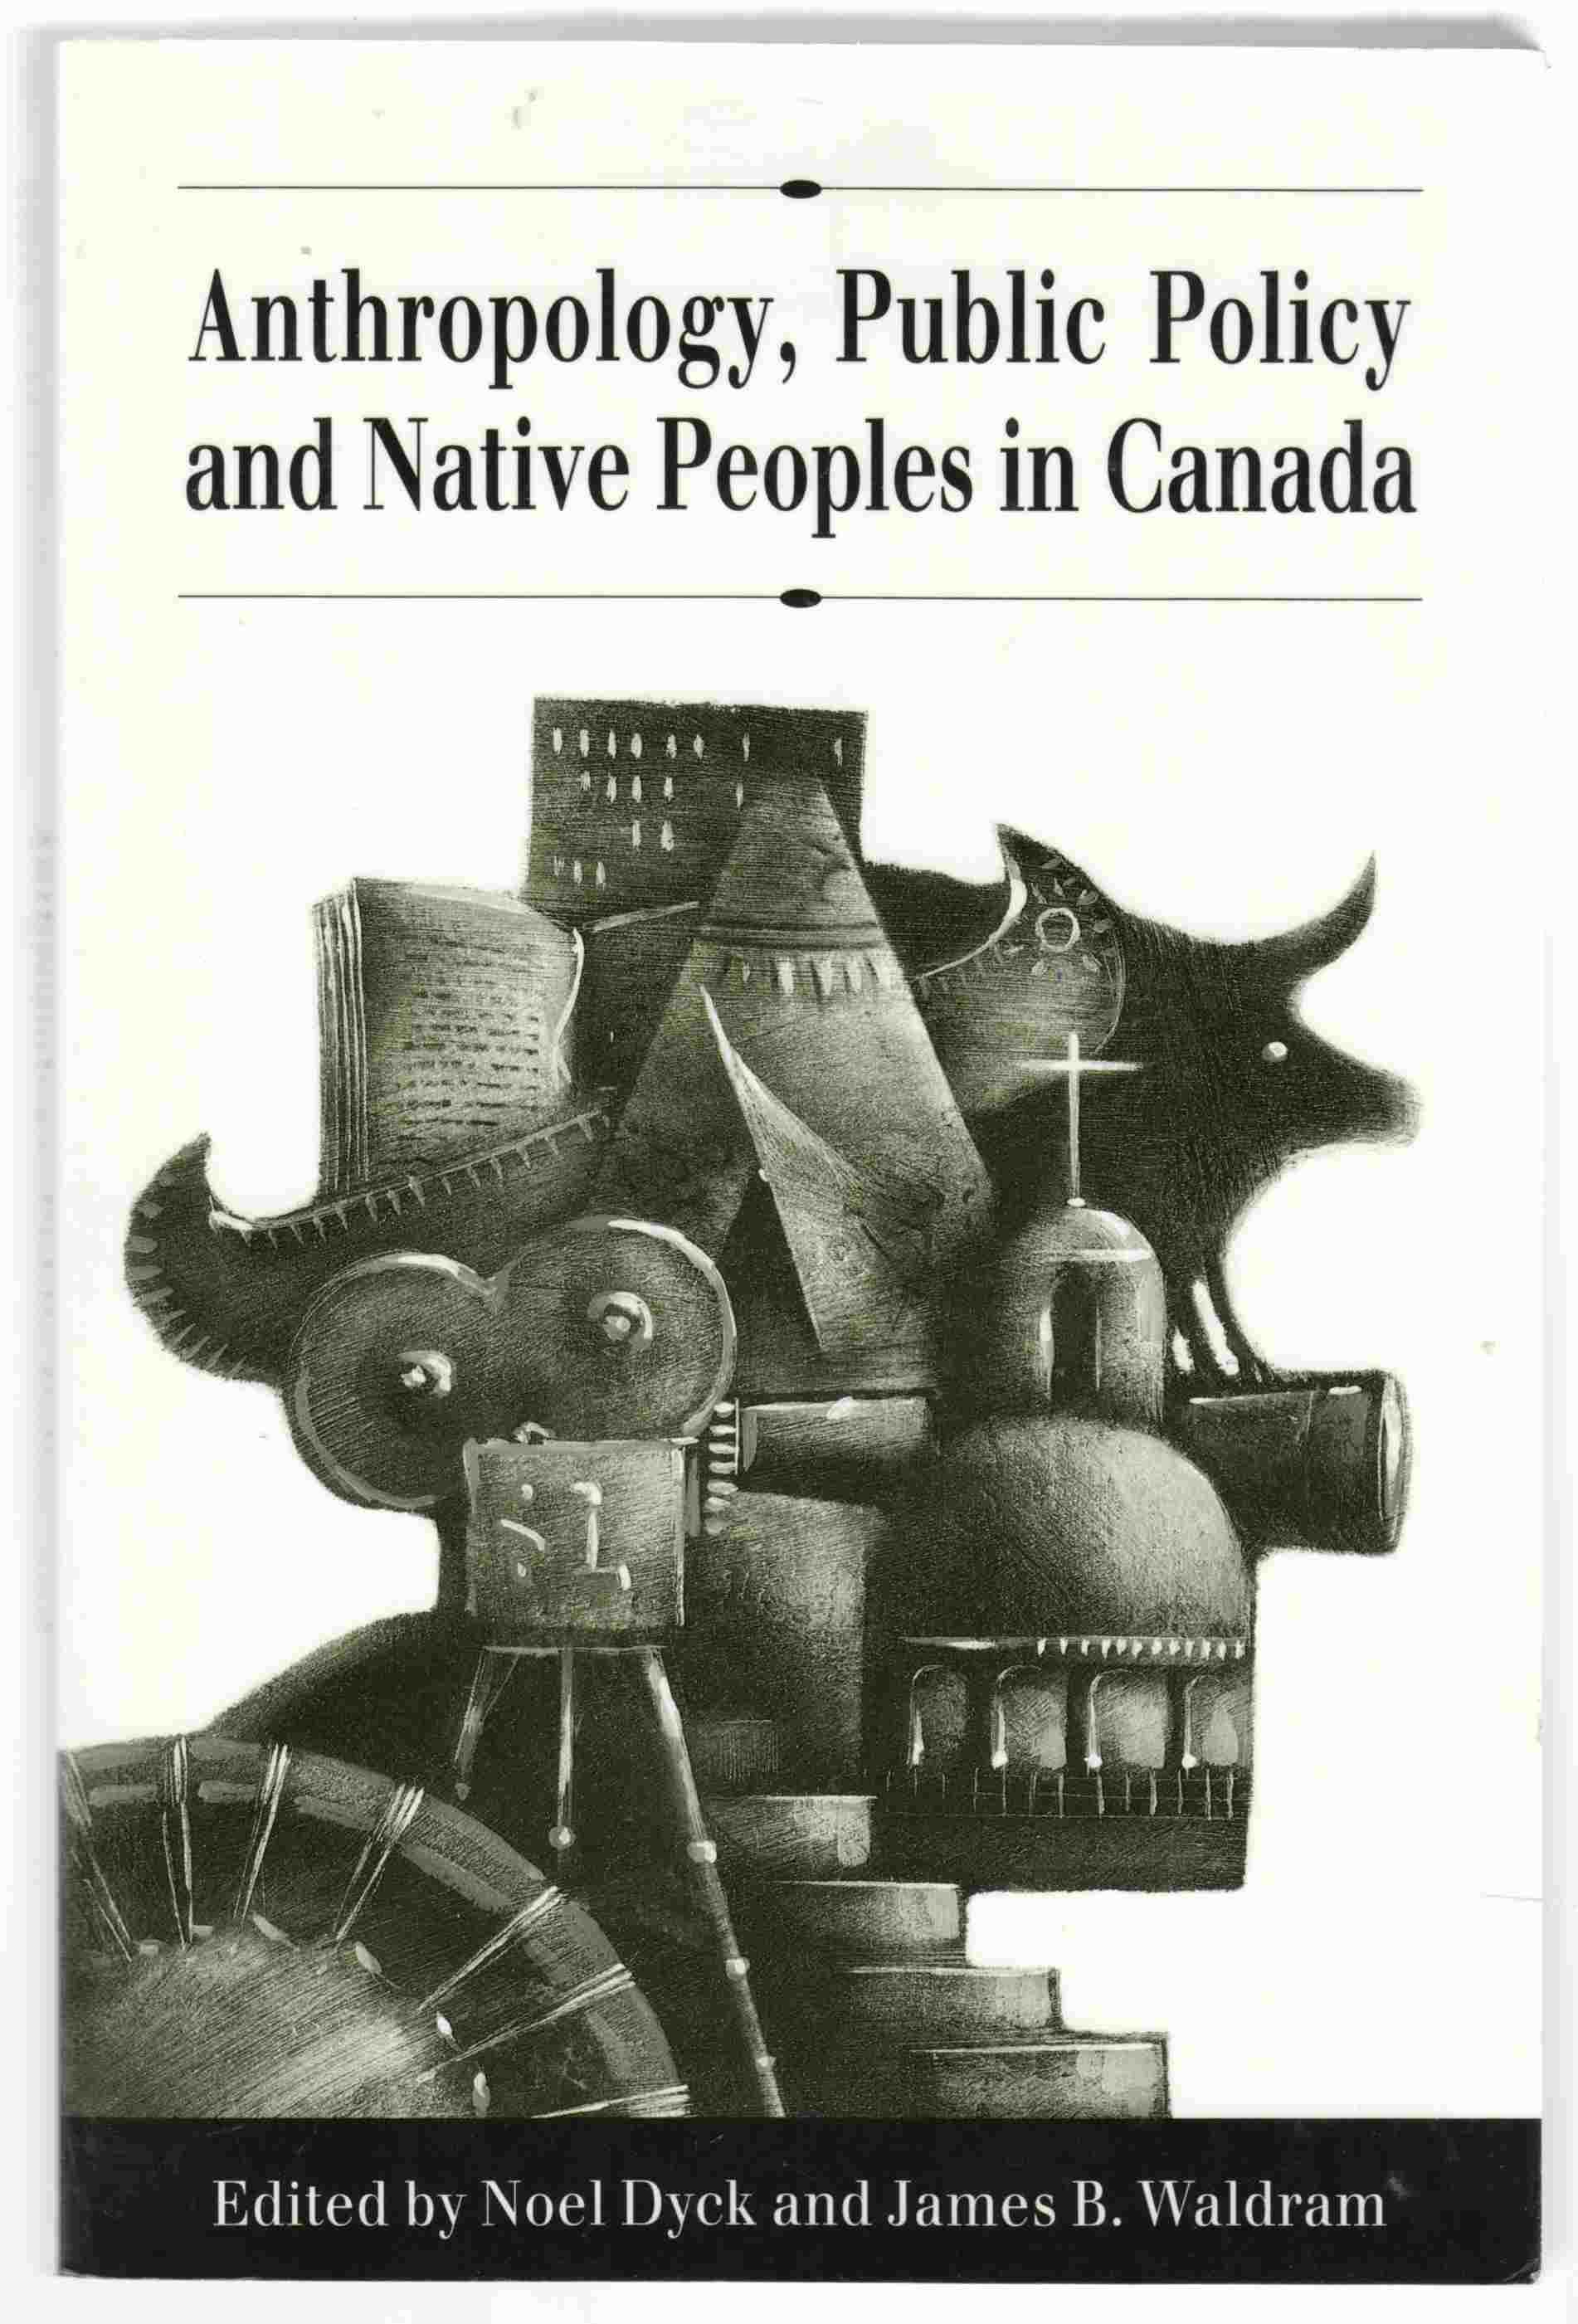 Image for Anthropology, Public Policy and Native Peoples in Canada